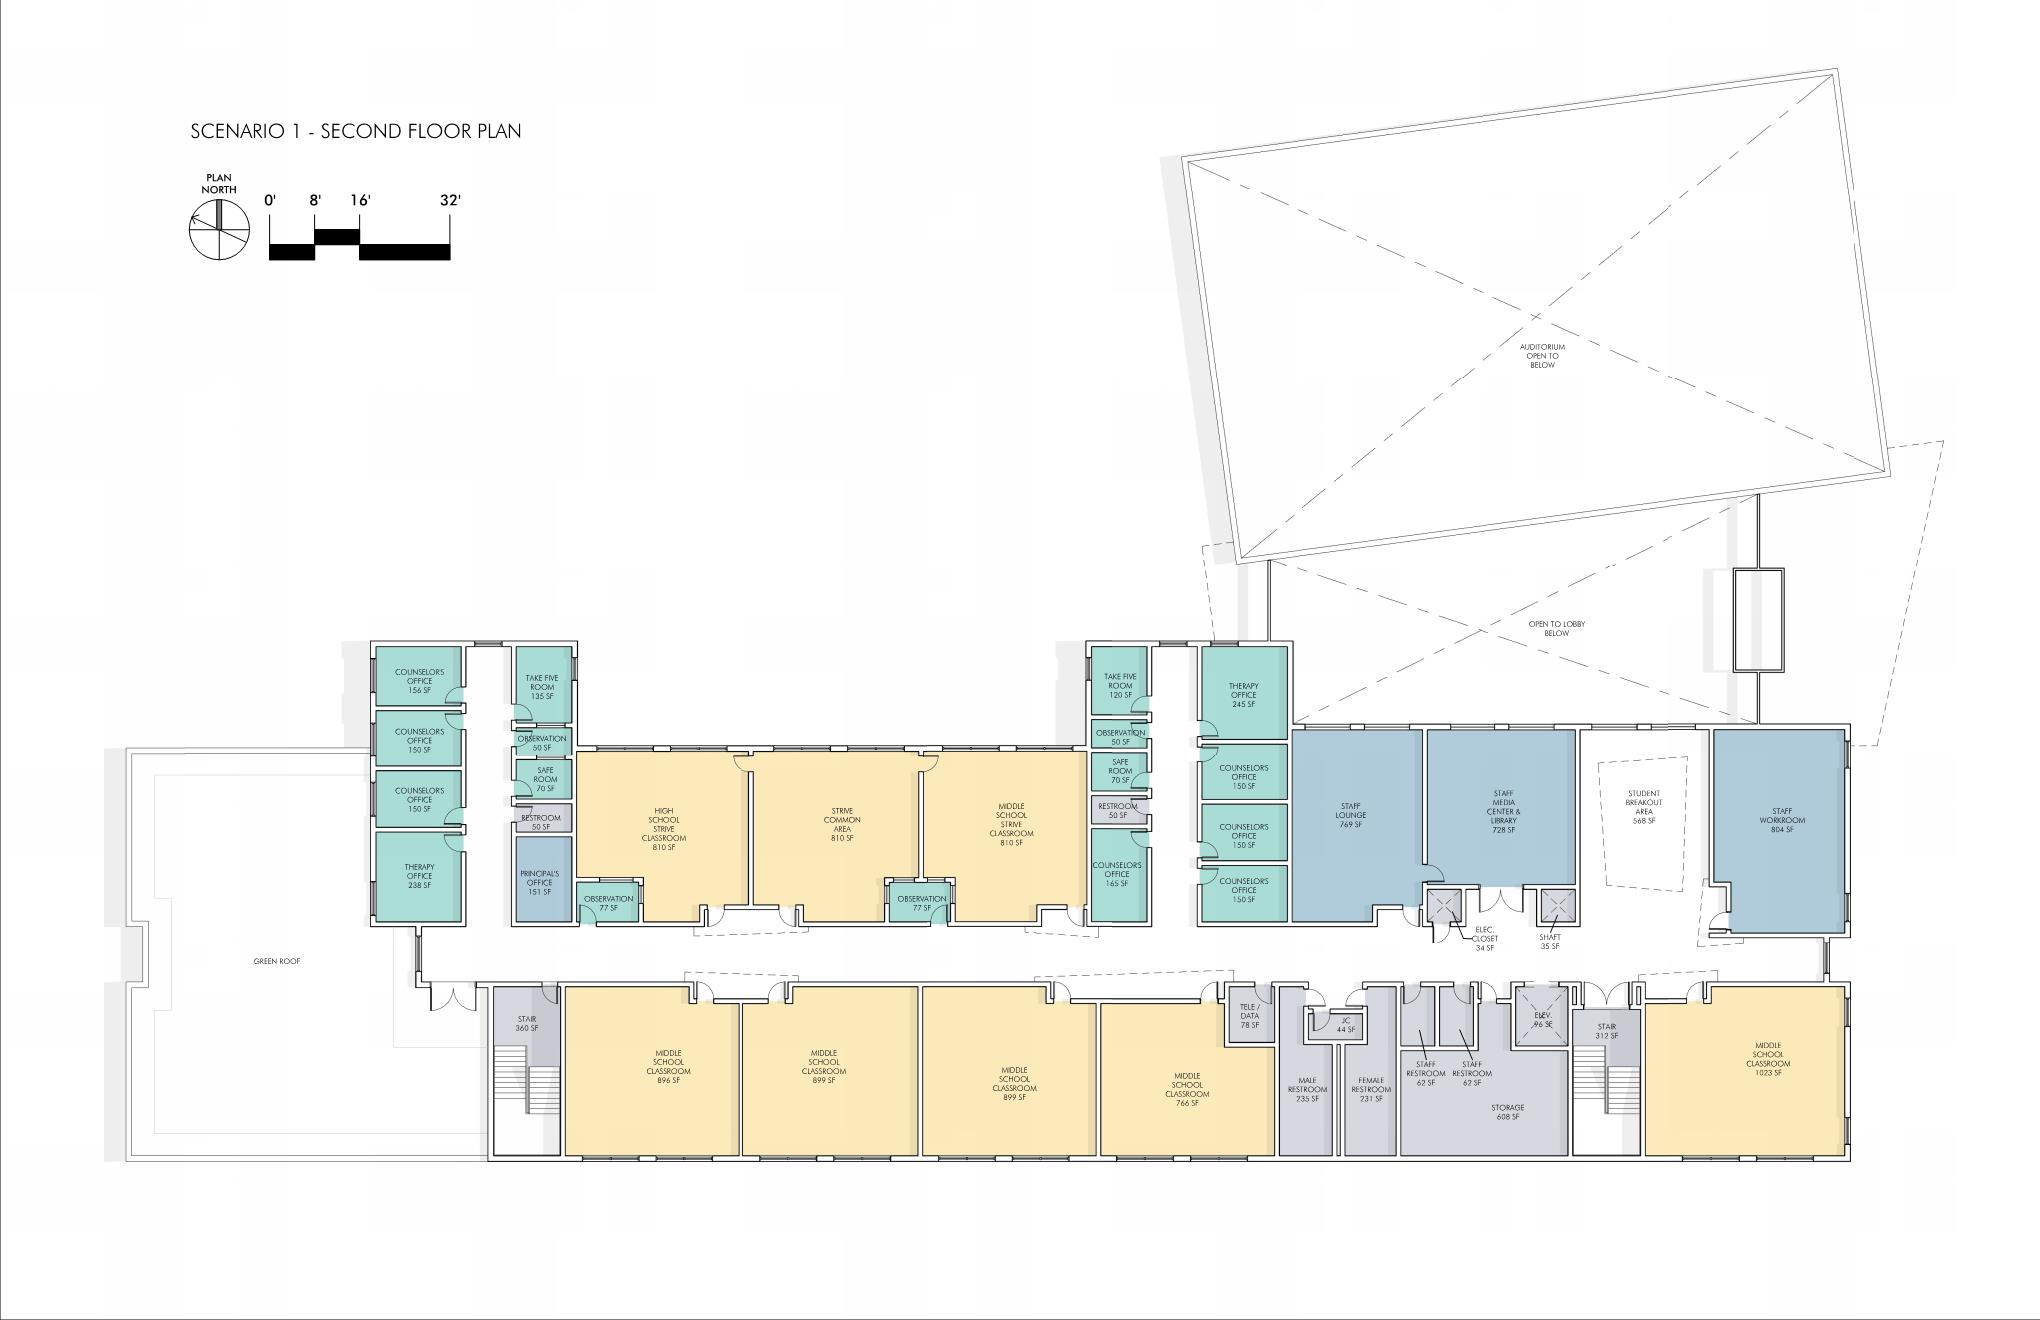 09 - VFES - Sheet - P1-2 - SCENARIO 1 - SECOND FLOOR PLAN.jpg